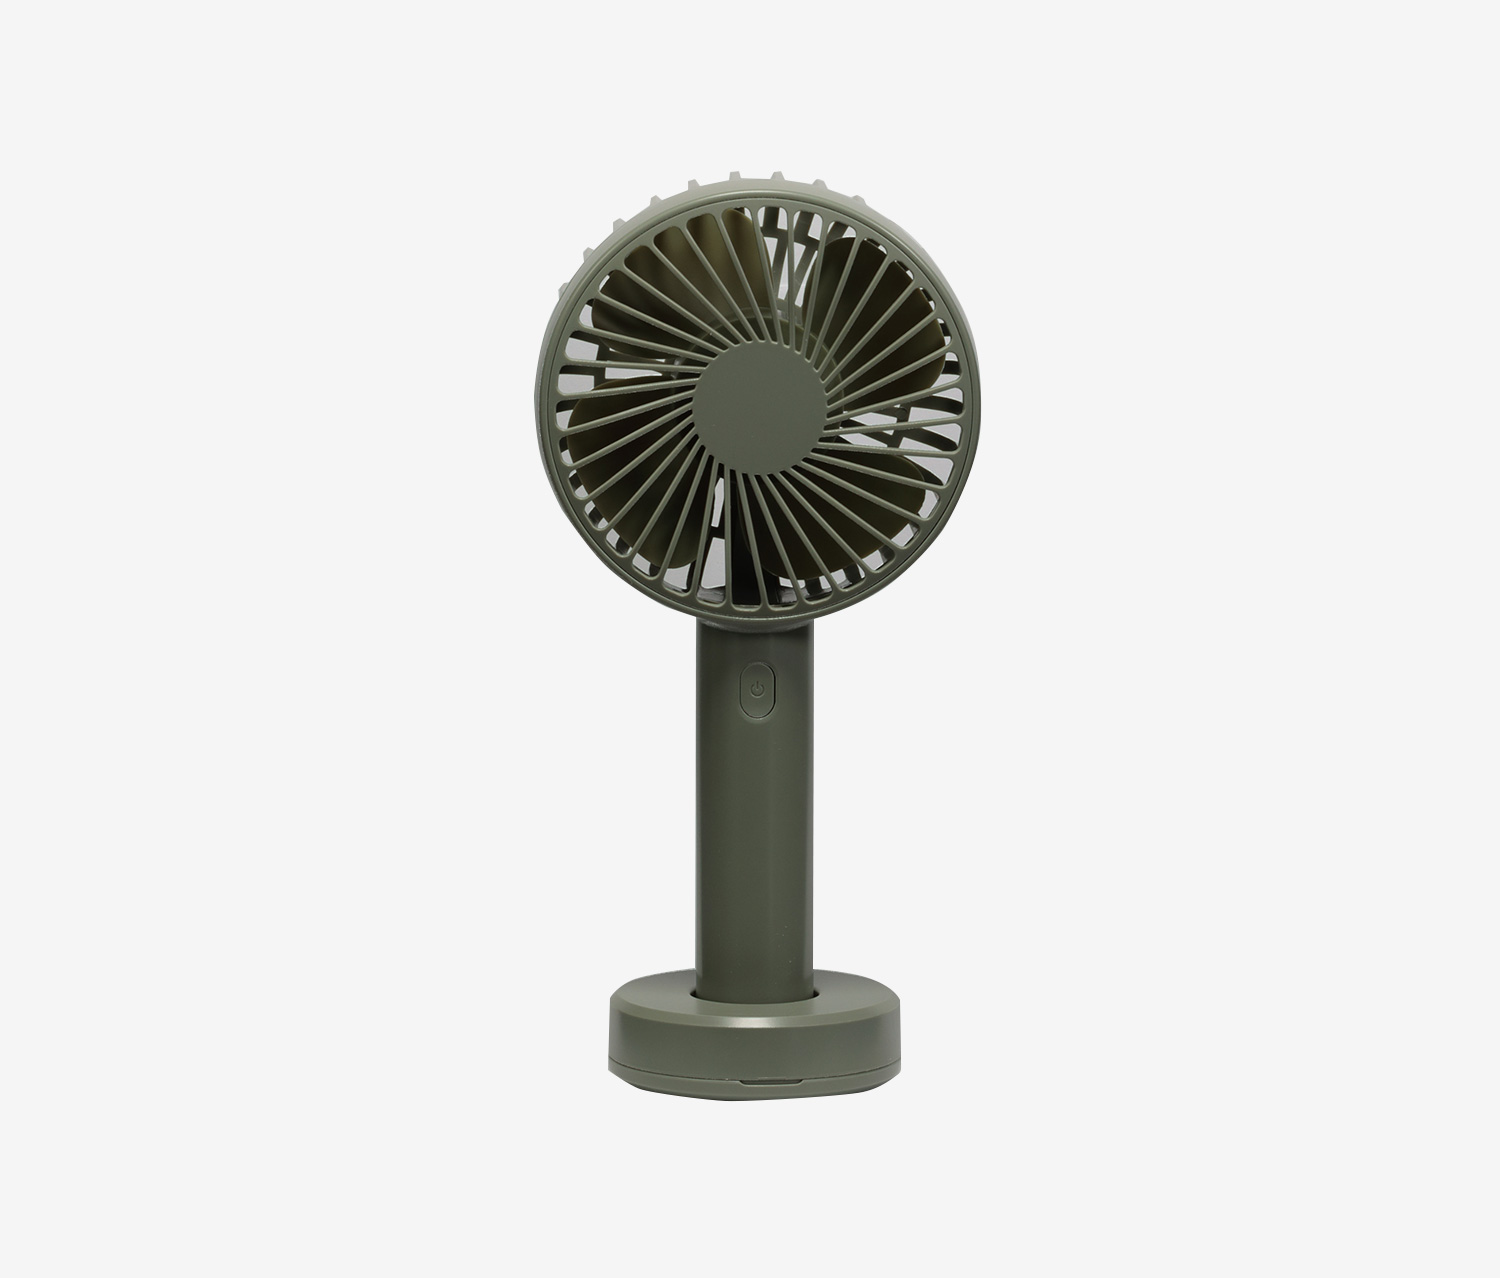 Handheld Desktop Fan, Green